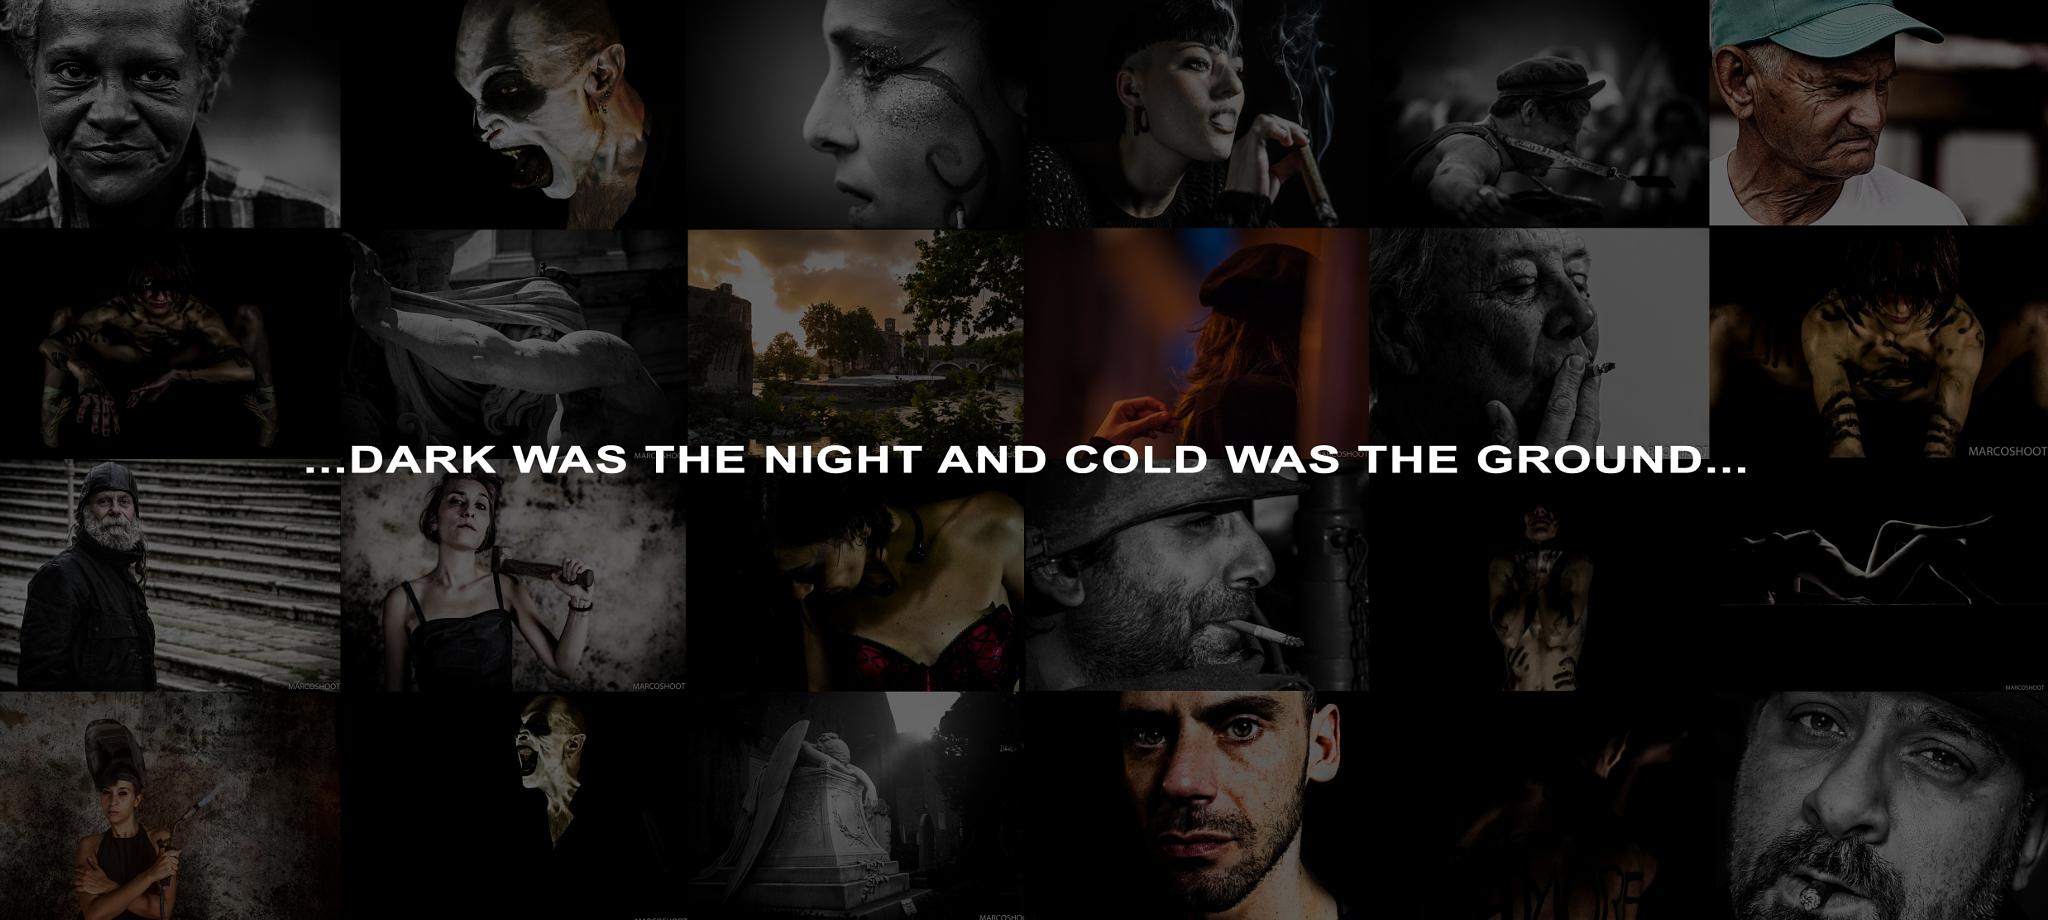 dark was the night and cold was the ground by marcomancinistudio